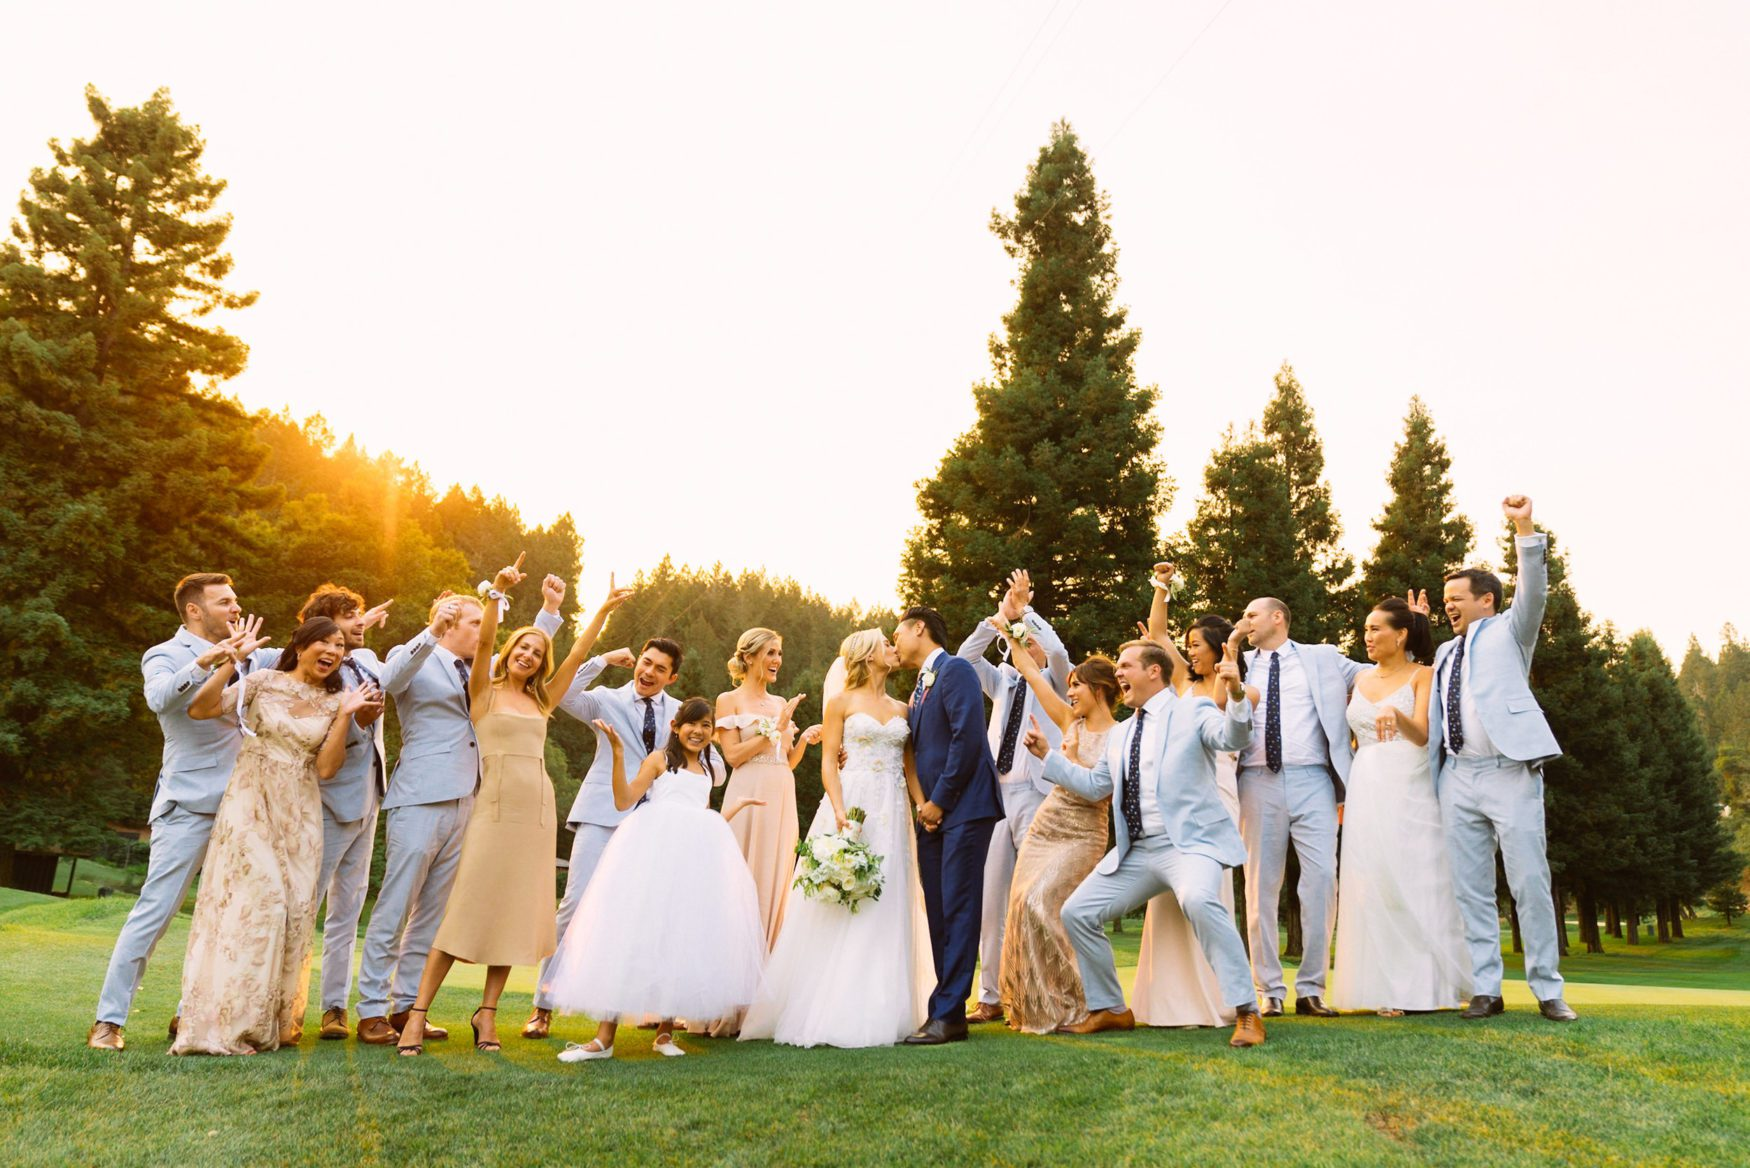 jon chu wedding at meadowood napa in california